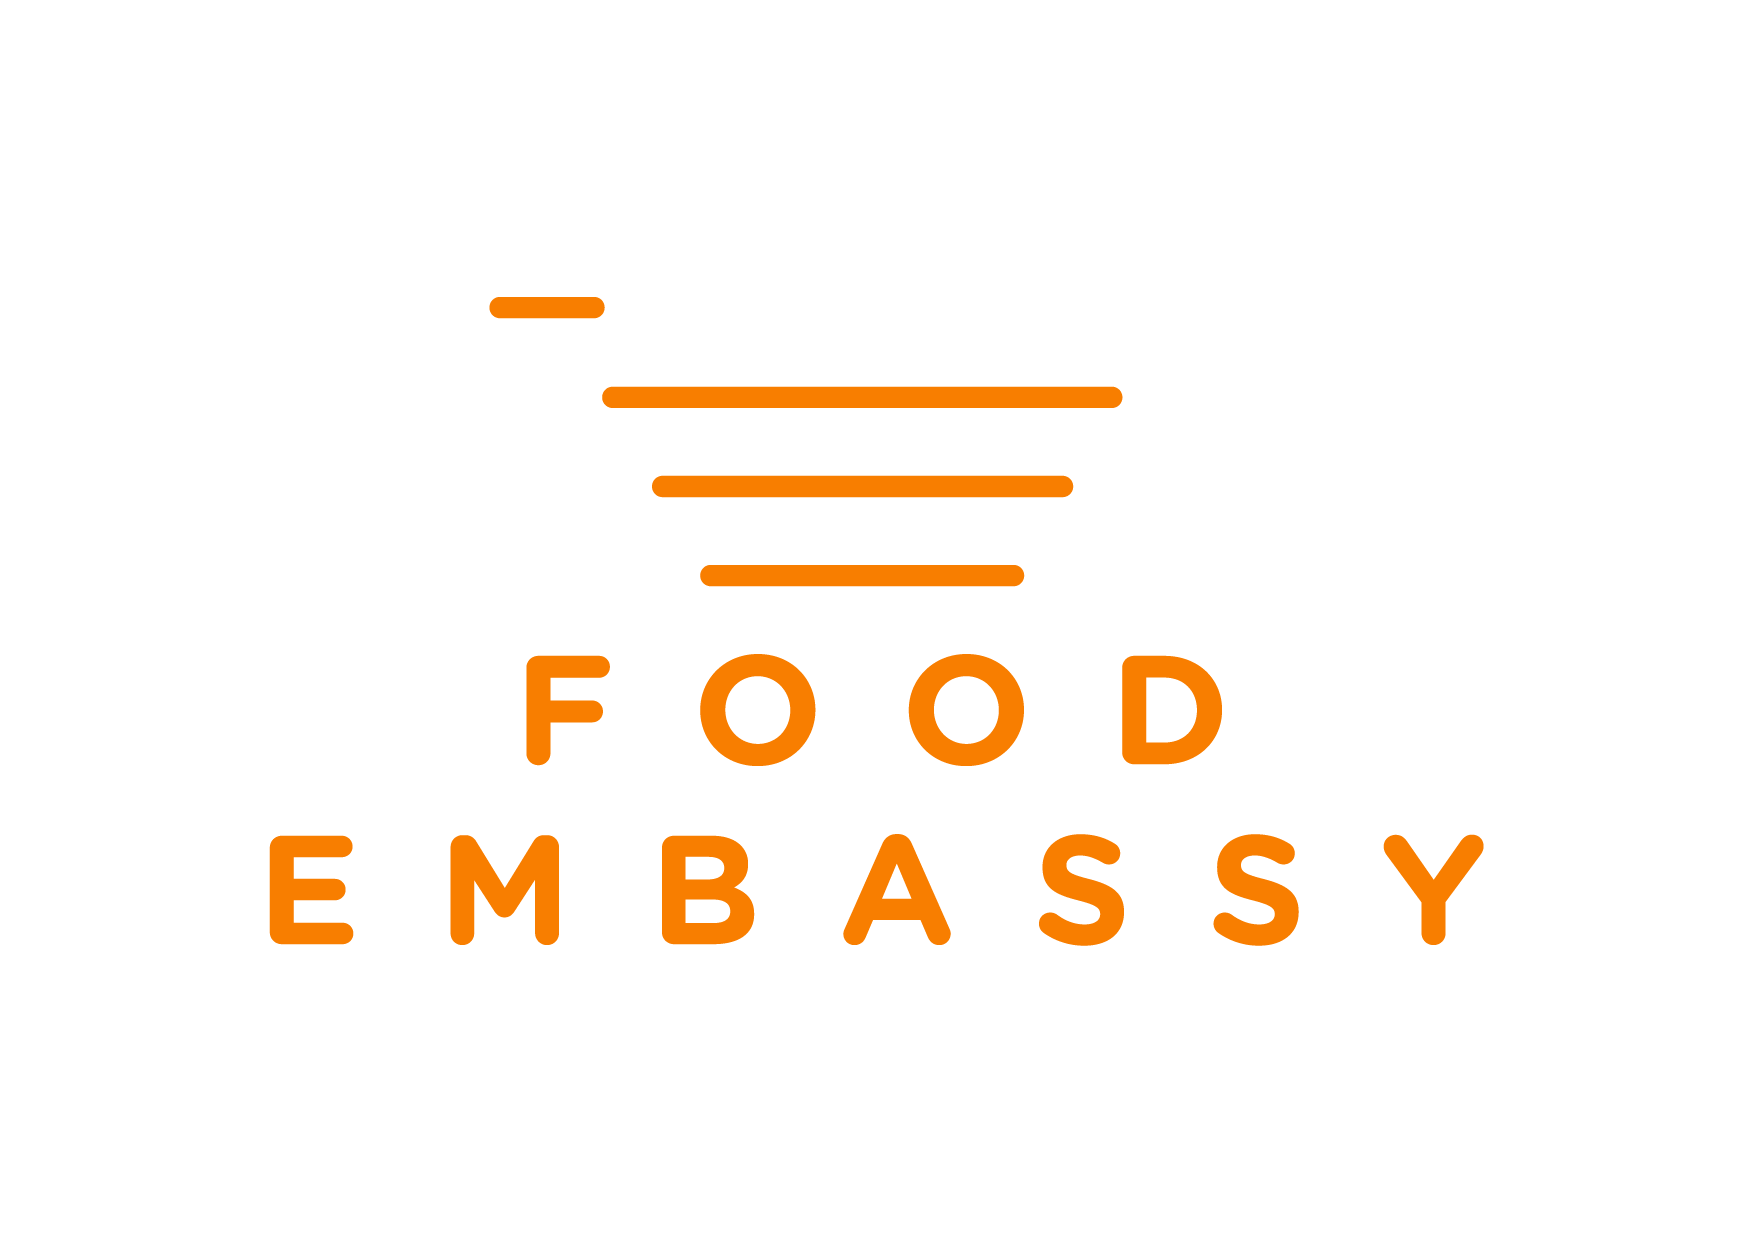 Food Embassy S.R.L